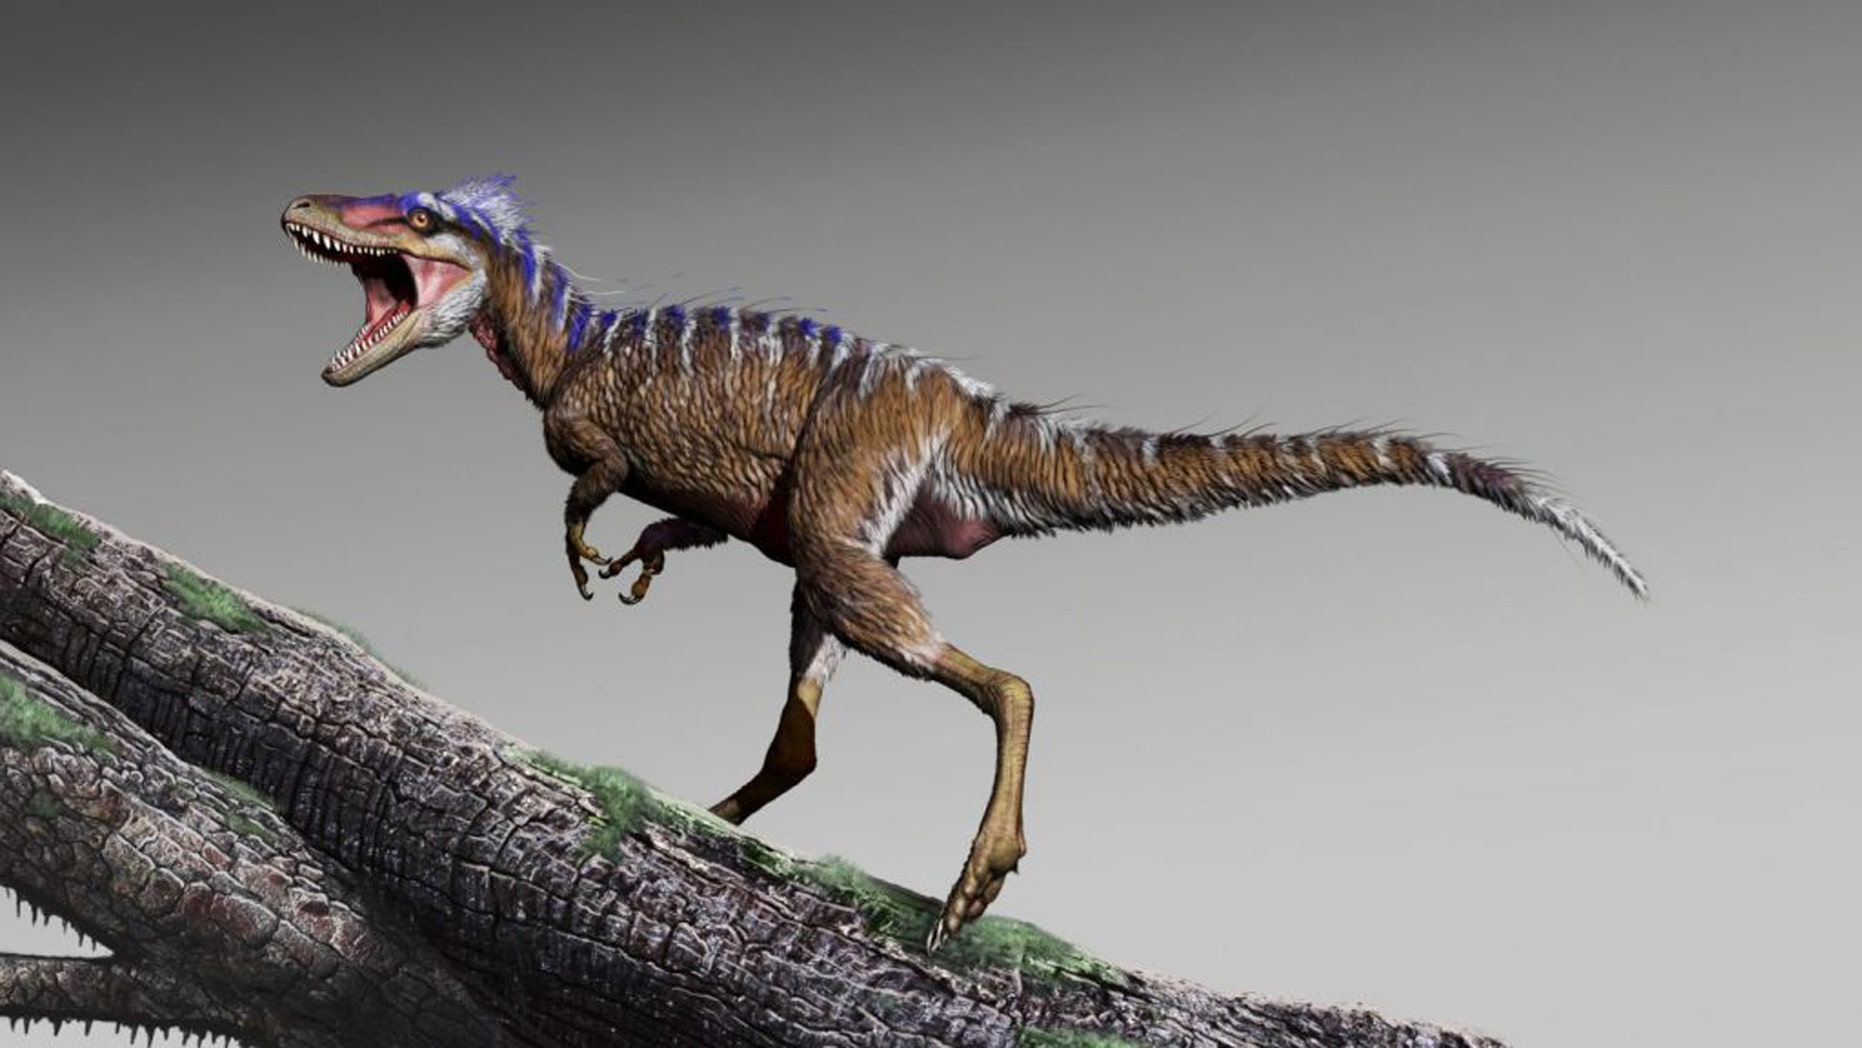 4-foot-tall T. rex cousin discovered, was a 'harbinger of doom'